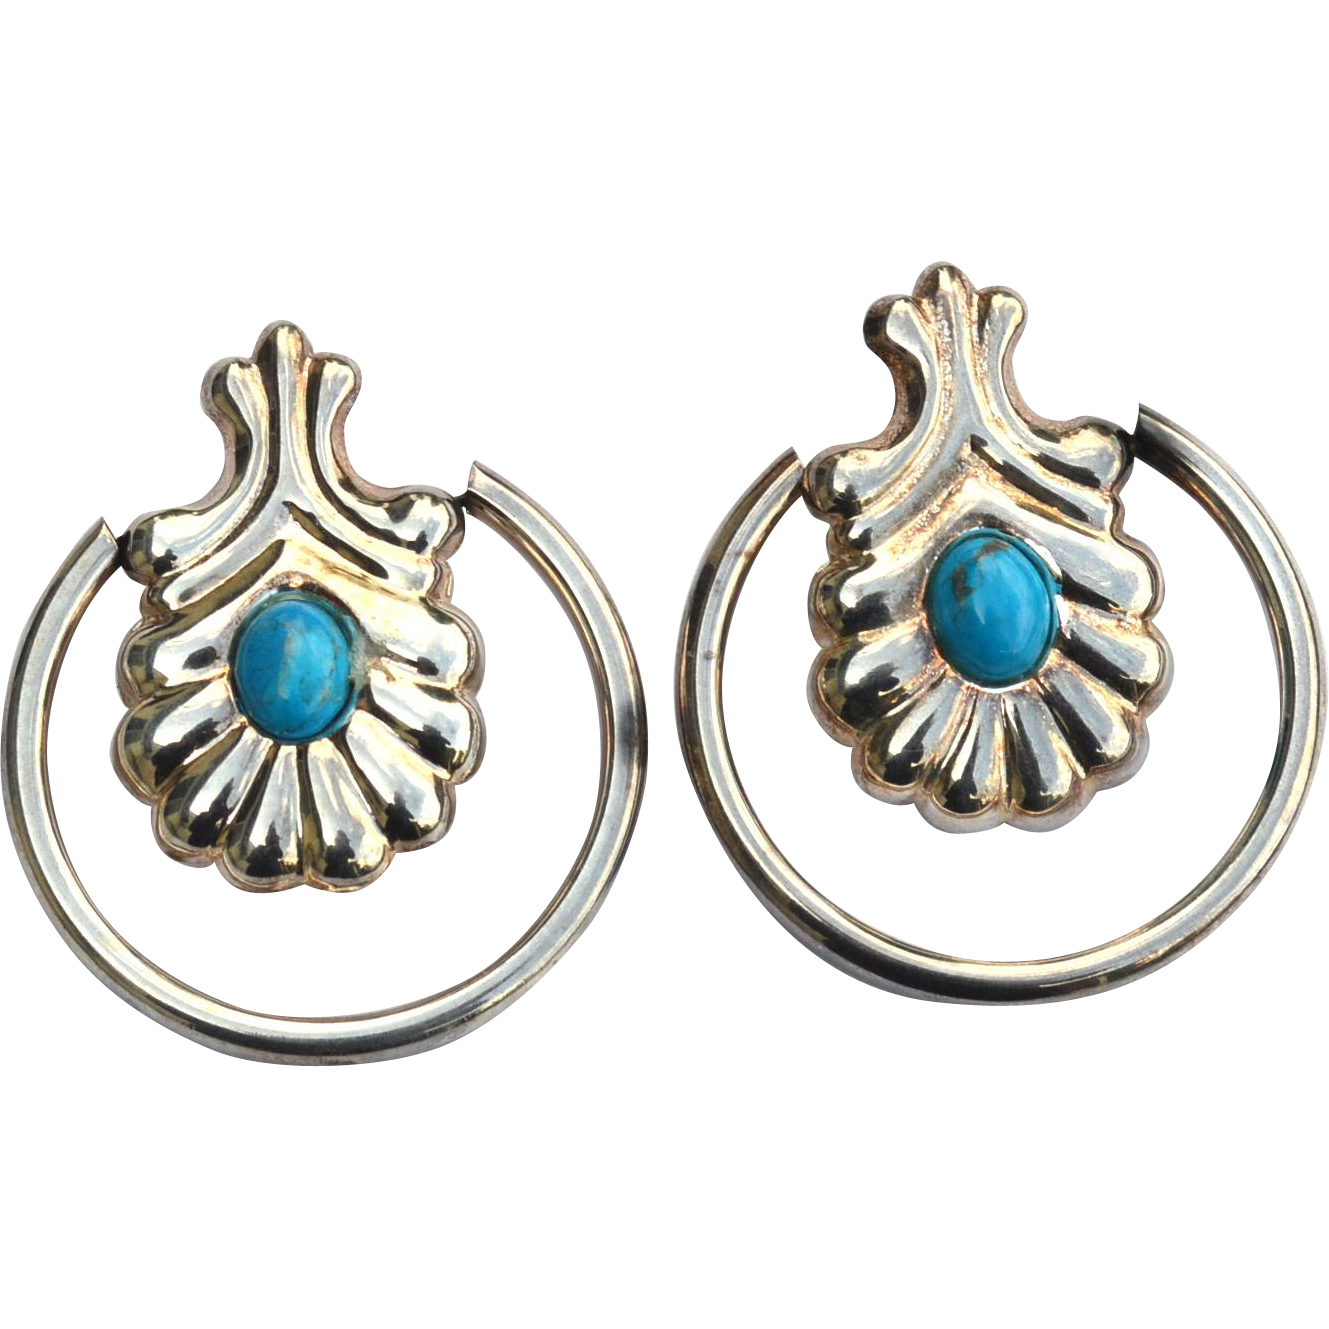 Huge Oversized Hallmarked STERLING SILVER and Turquoise Earrings